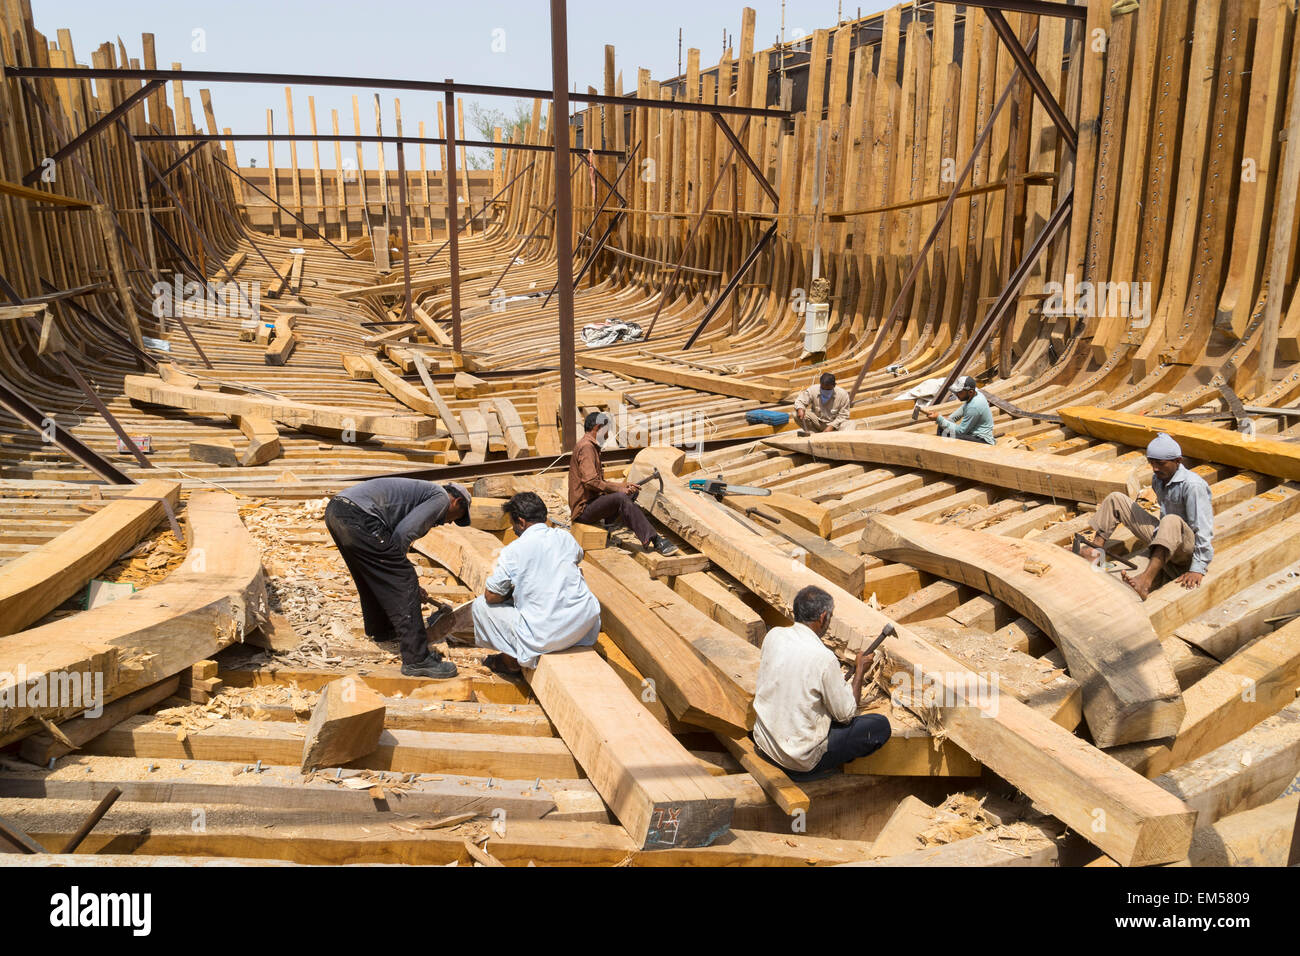 Craftsmen Building A Traditional Wooden Dhow Cargo Ship In Shipyard Beside The Creek River Dubai United Arab Emirates